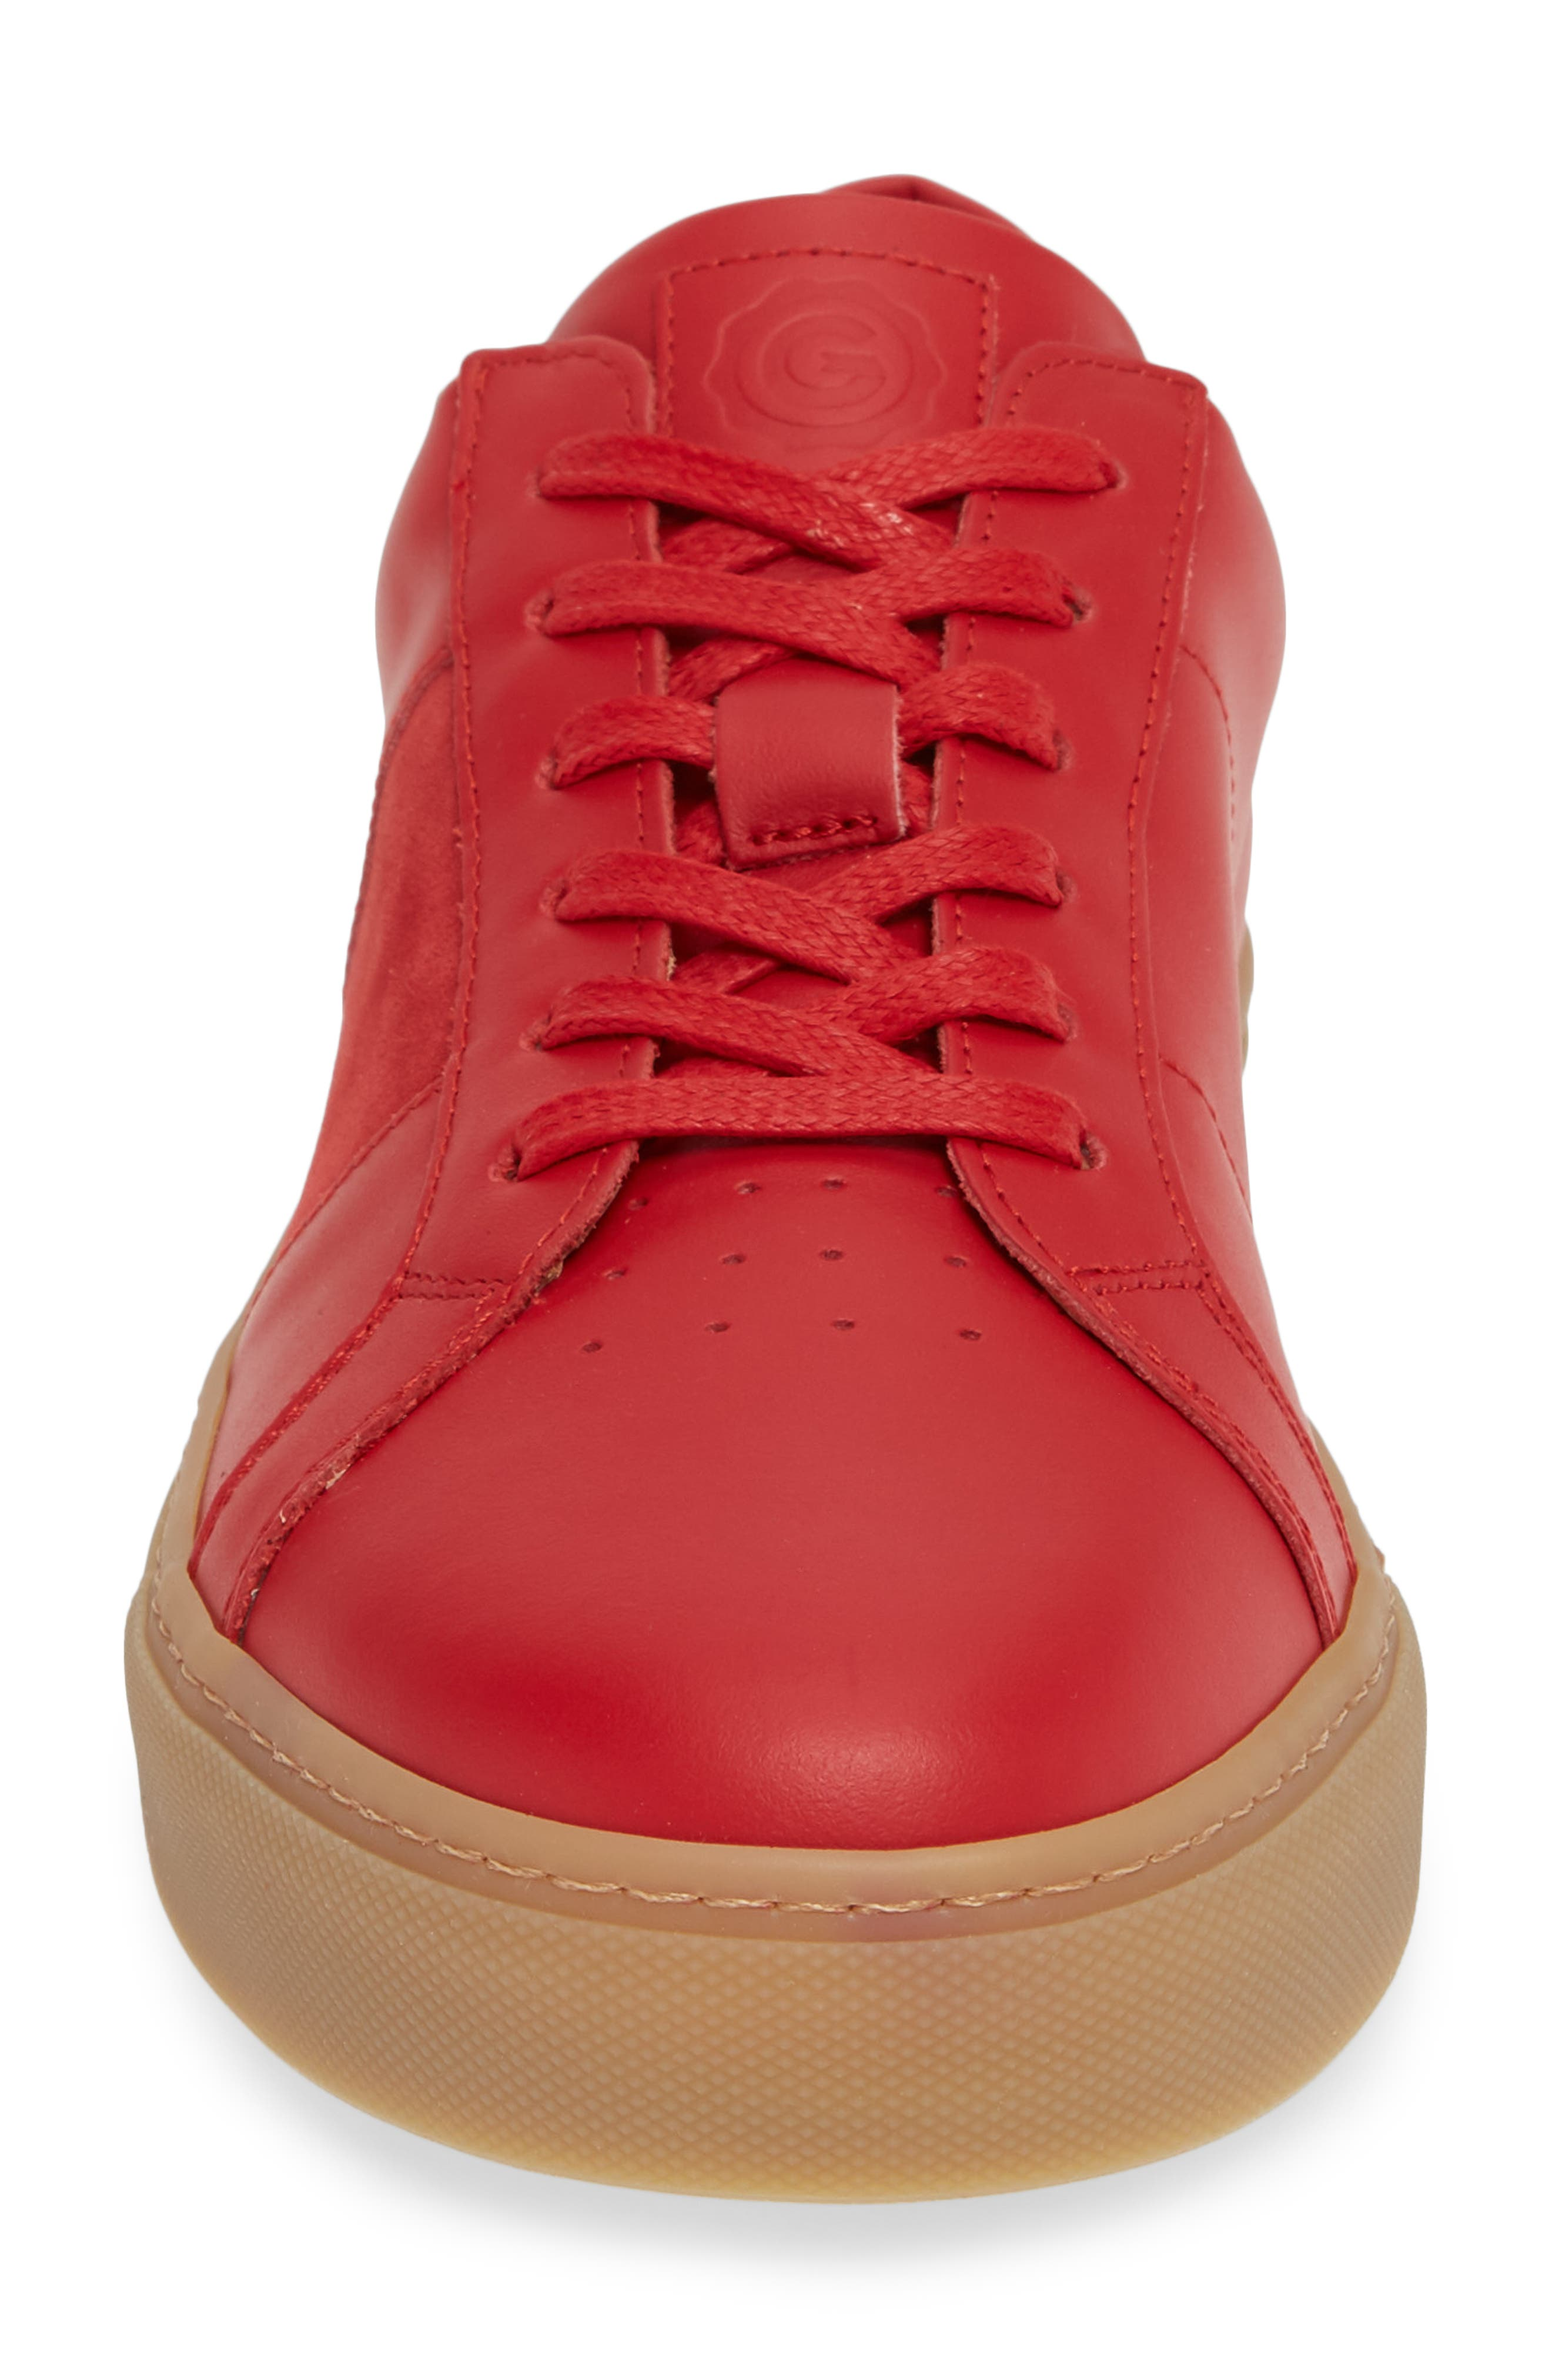 Royale Sneaker,                             Alternate thumbnail 4, color,                             RED/ GUM LEATHER